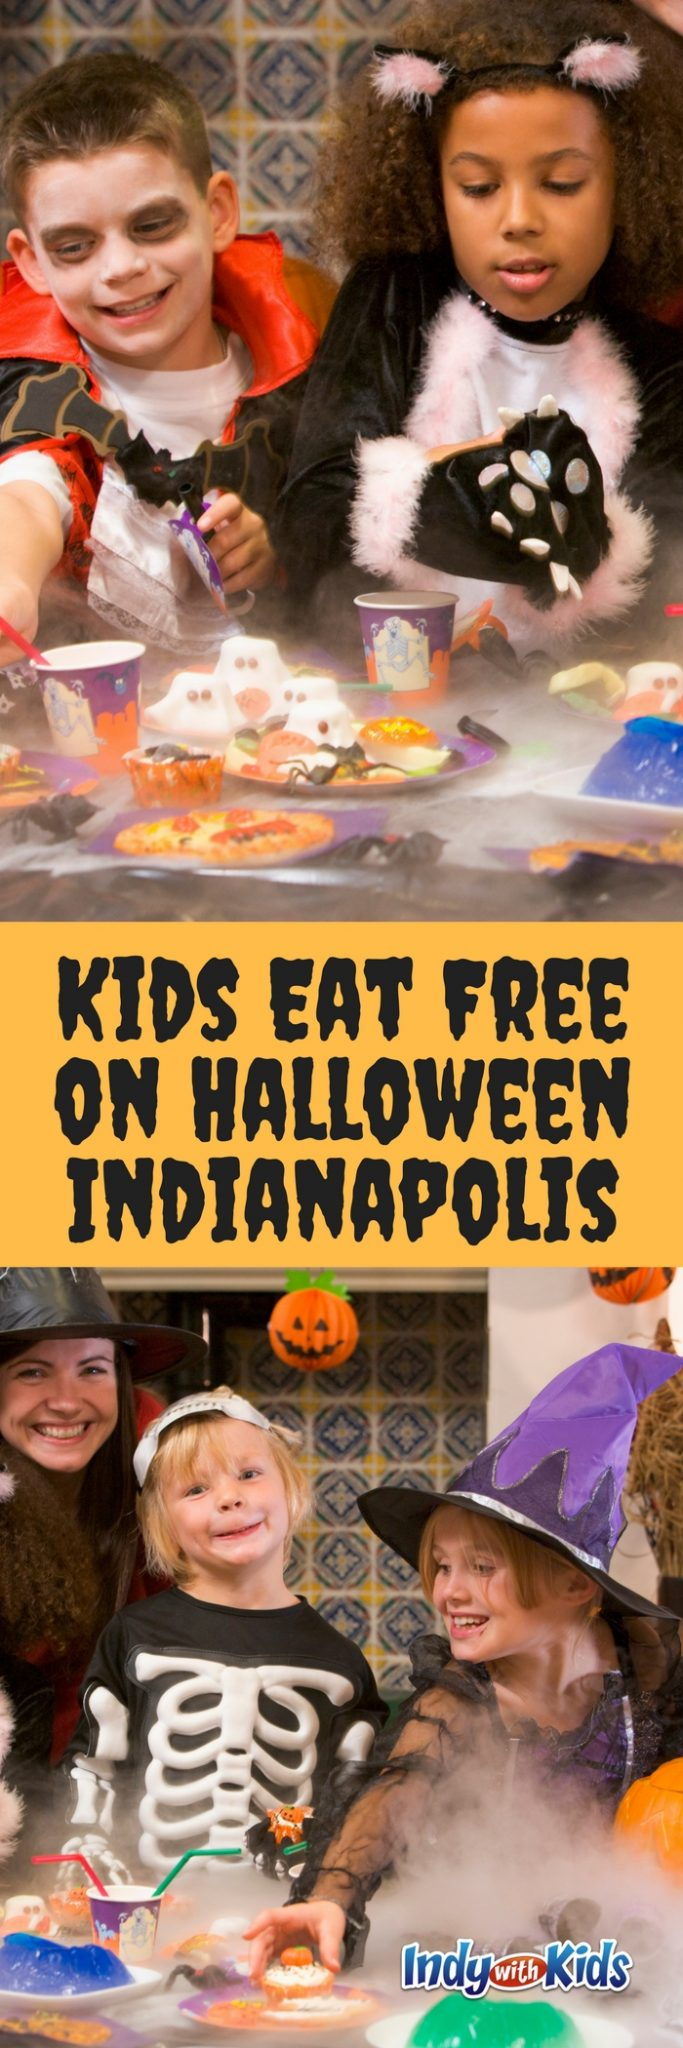 where kids eat free on halloween in indianapolis | 2018